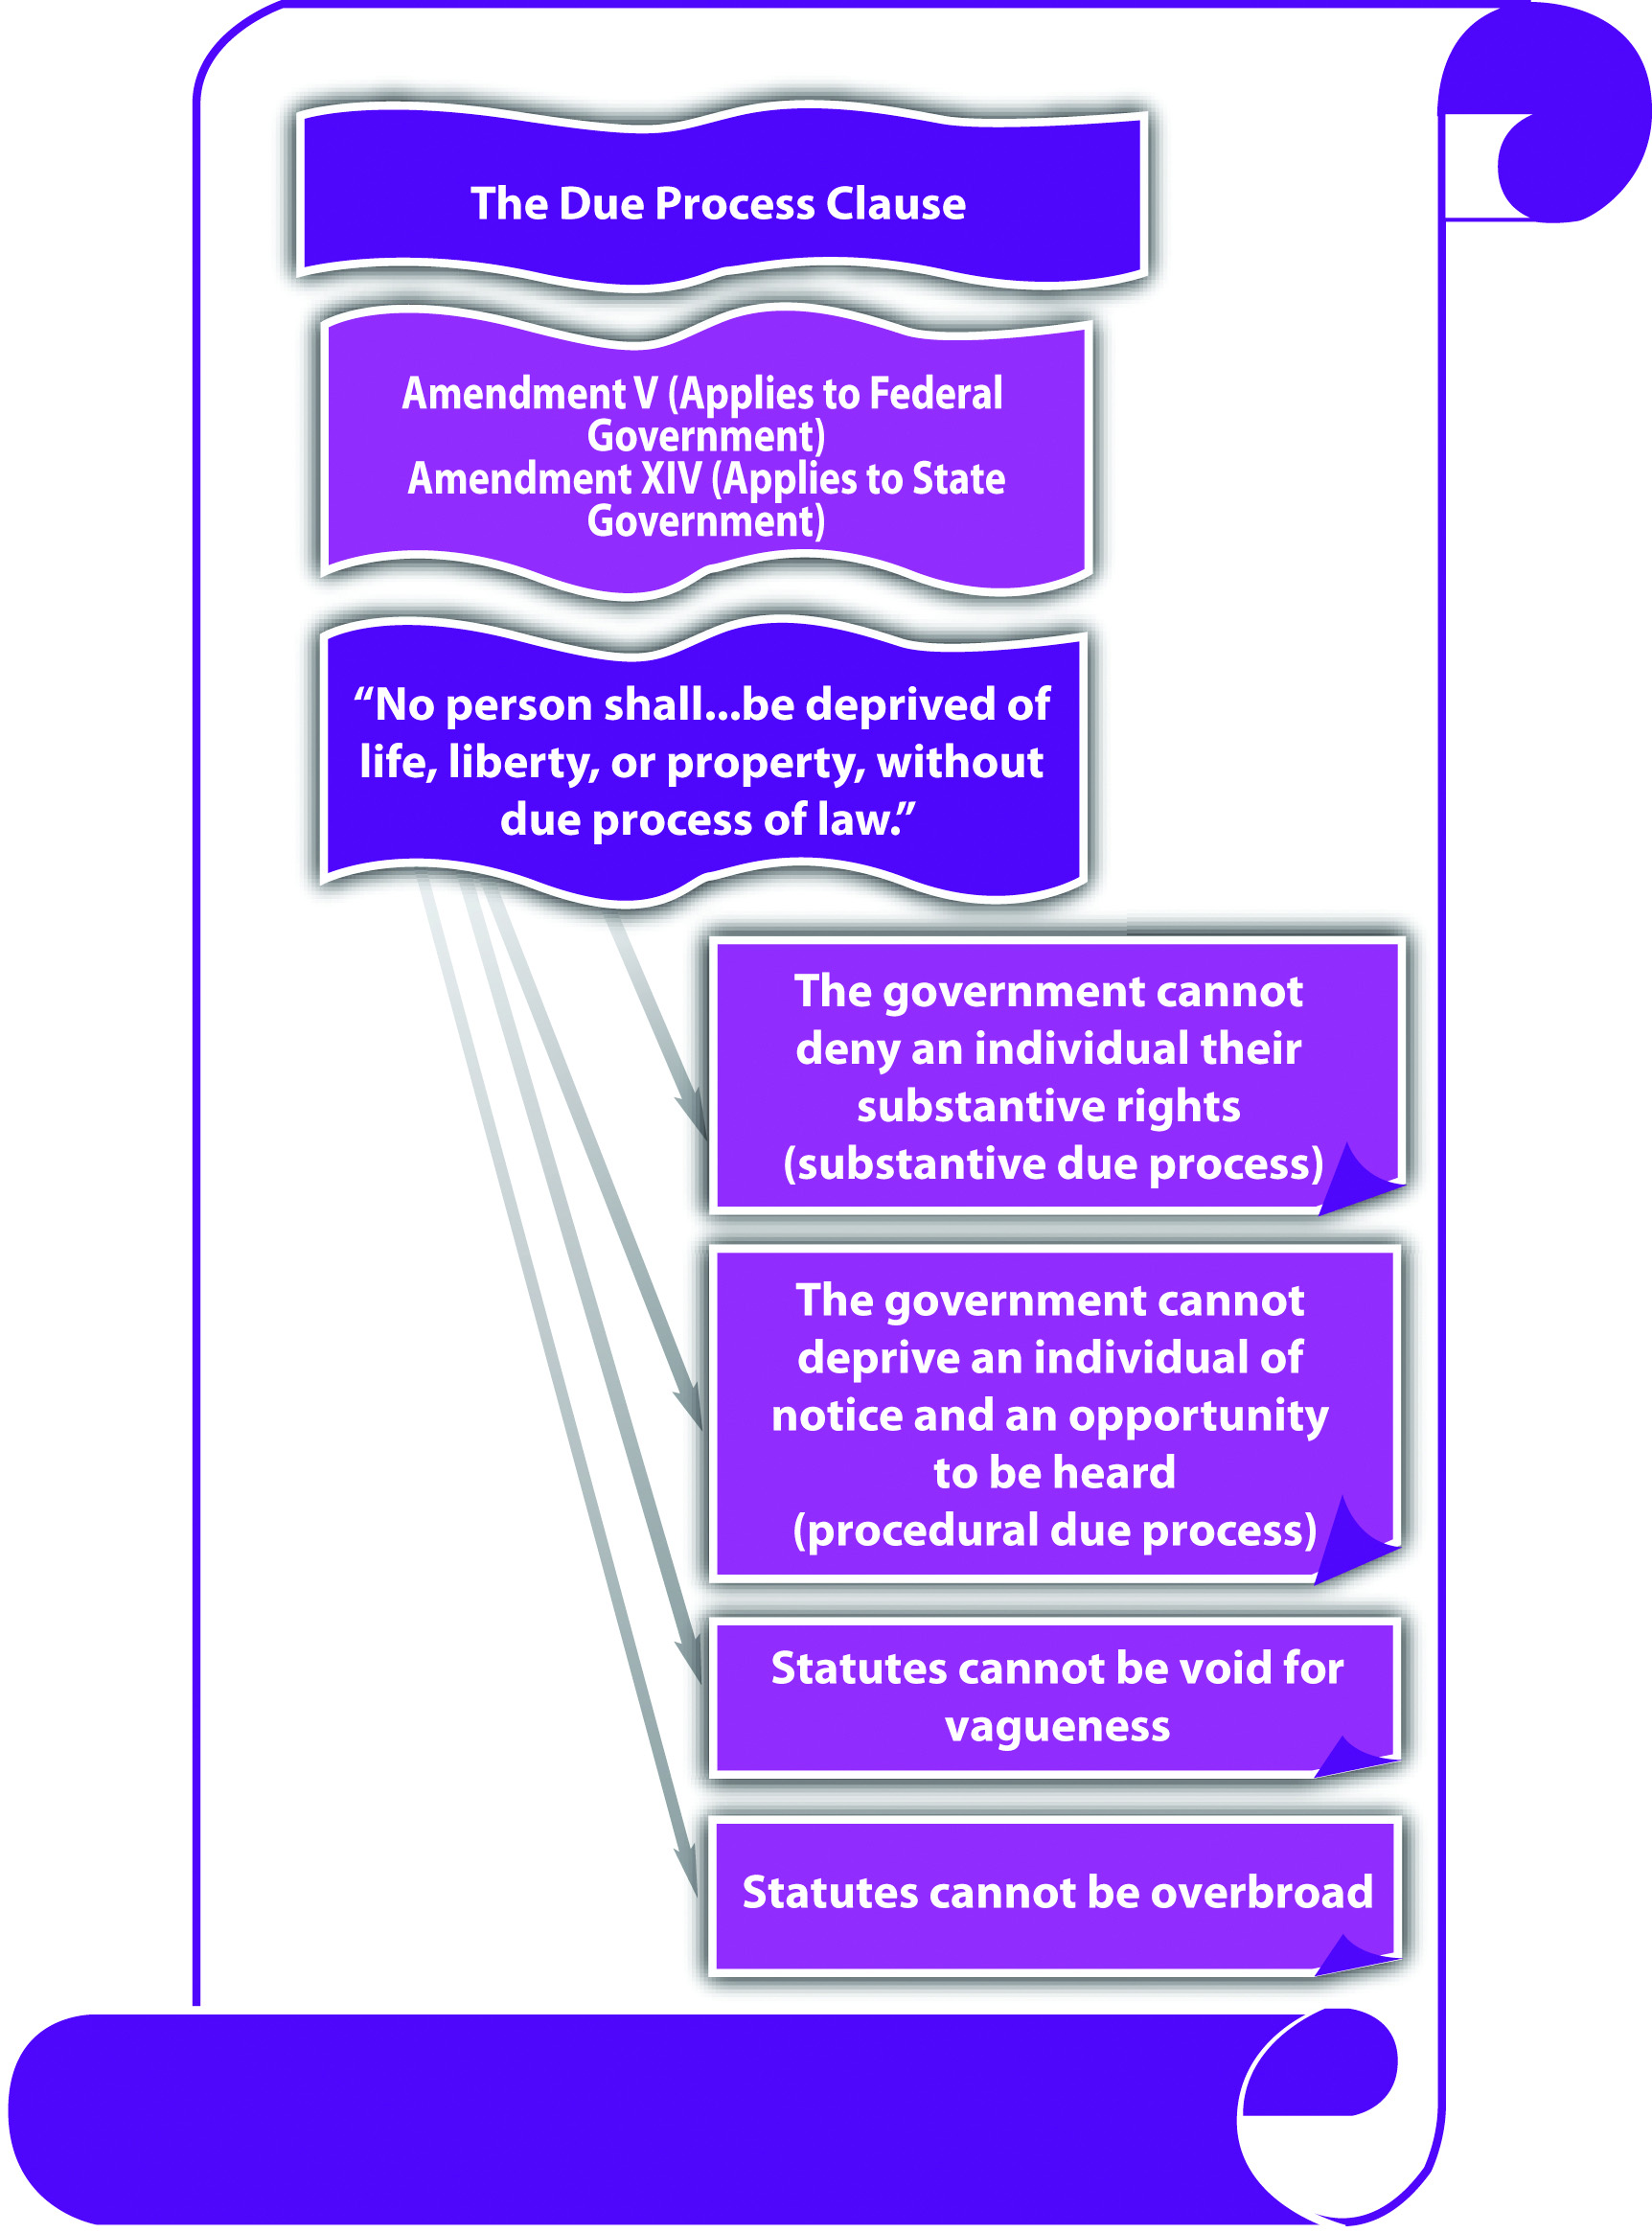 Example Of An Overbroad Statute